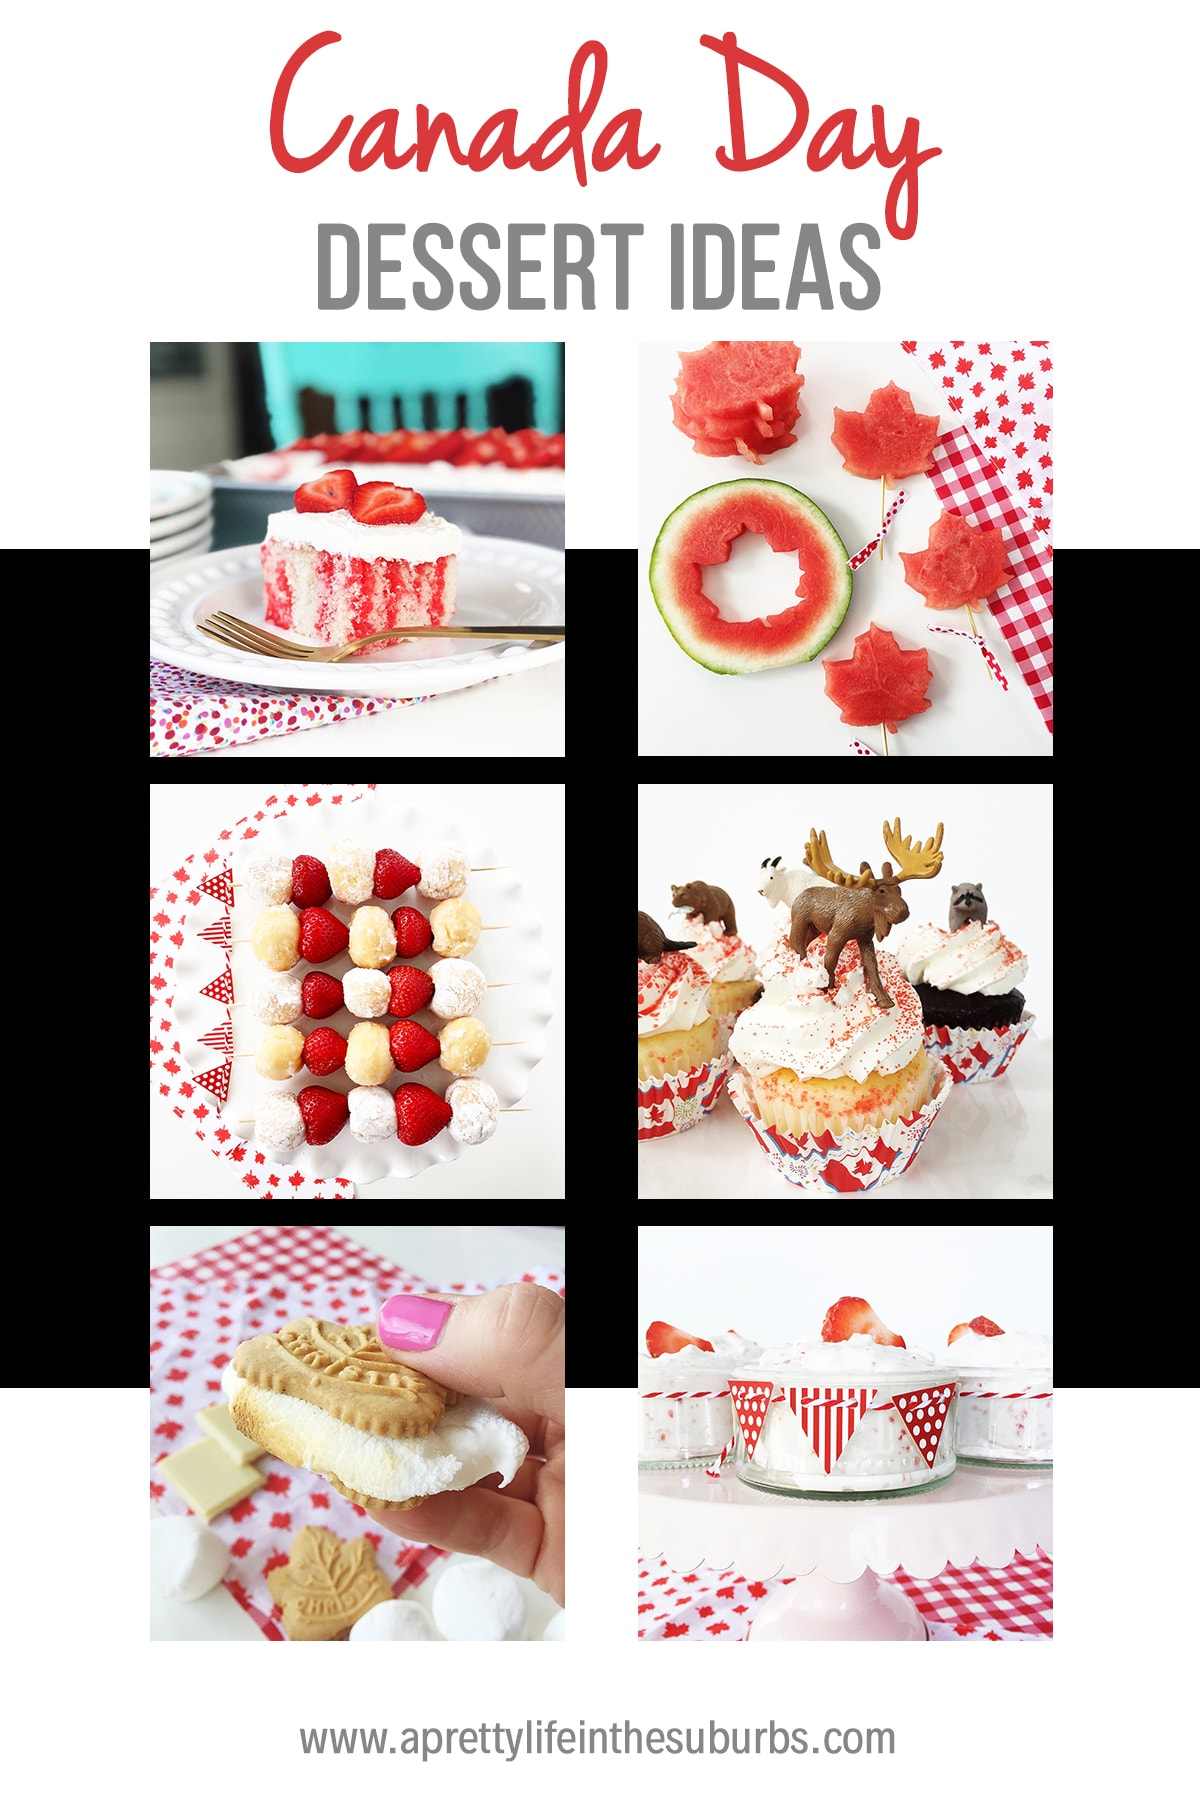 Canada Day Dessert Ideas